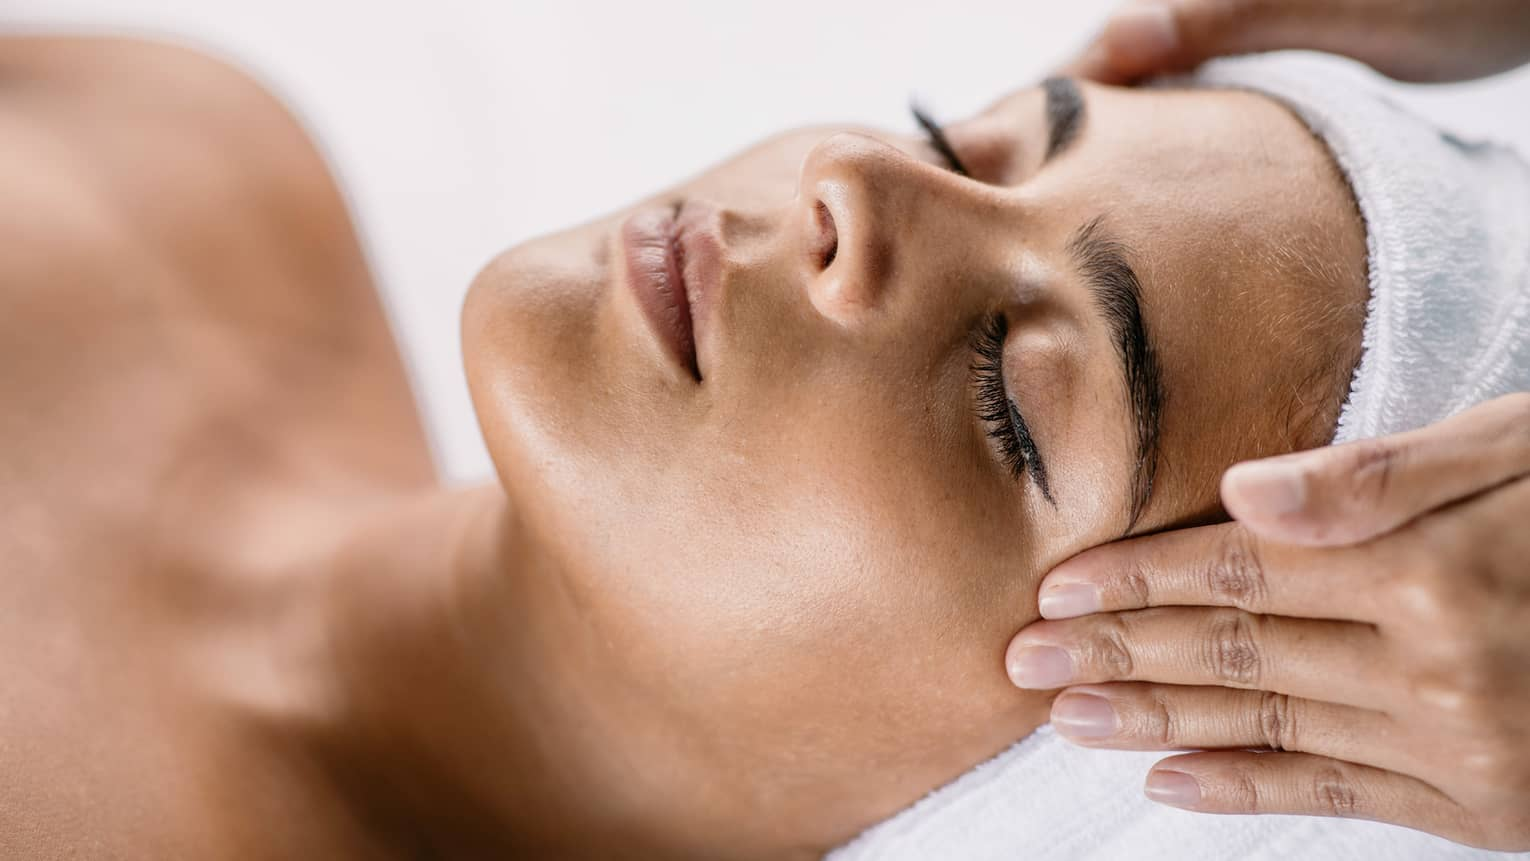 Hands massage woman's temples as she closes her eyes, spa towel around hair